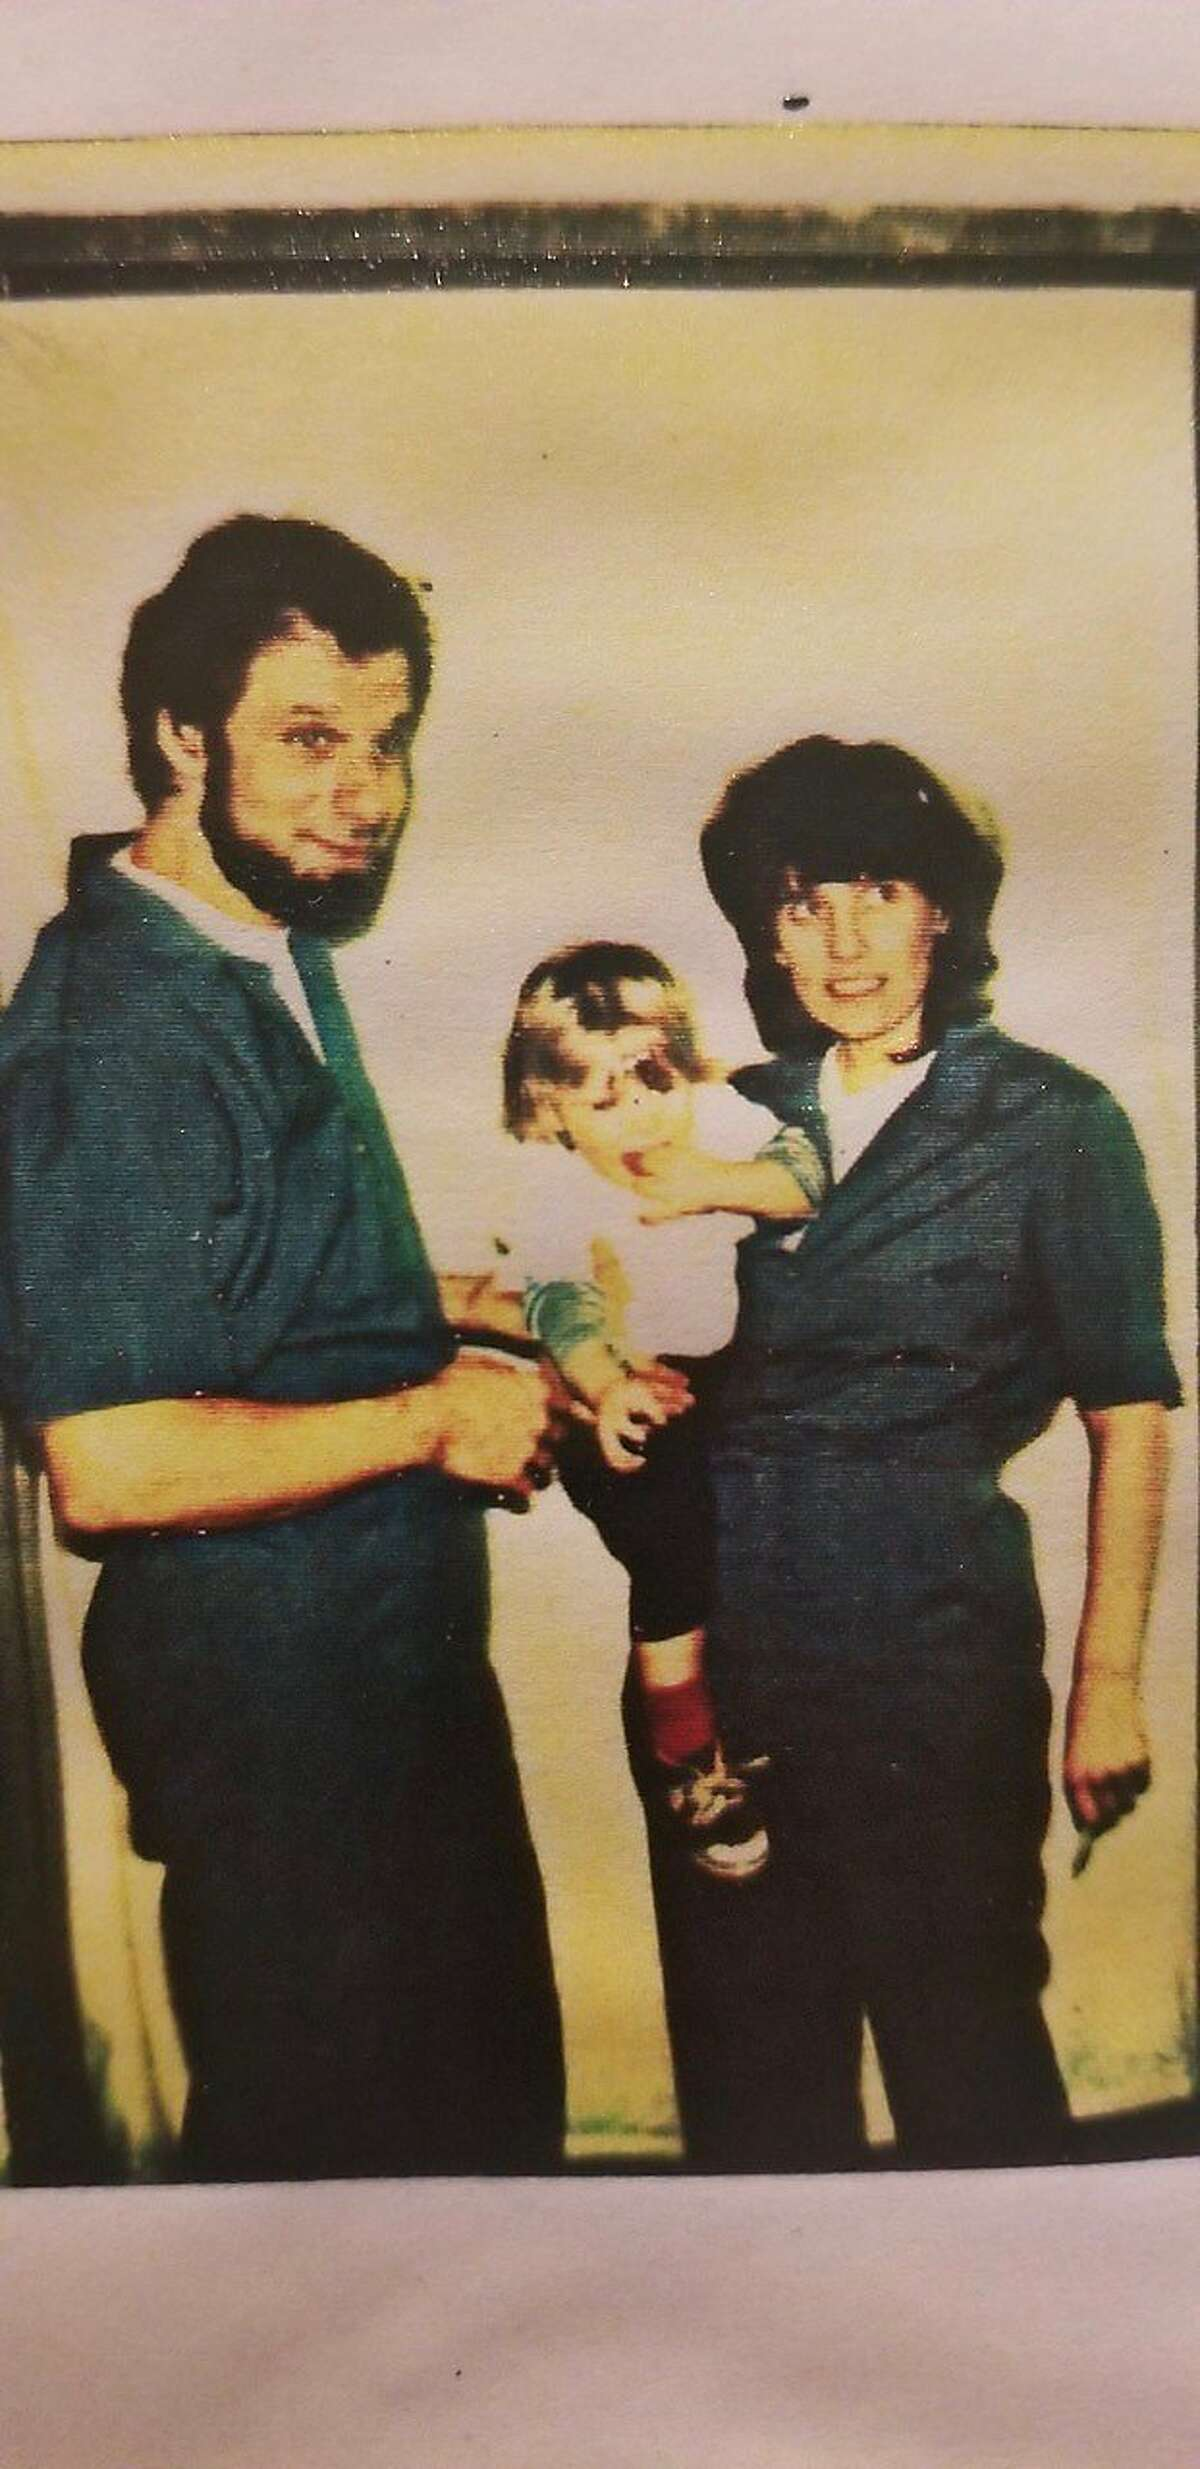 Chesa Boudin with his parents, David Gilbert and Kathy Boudin.